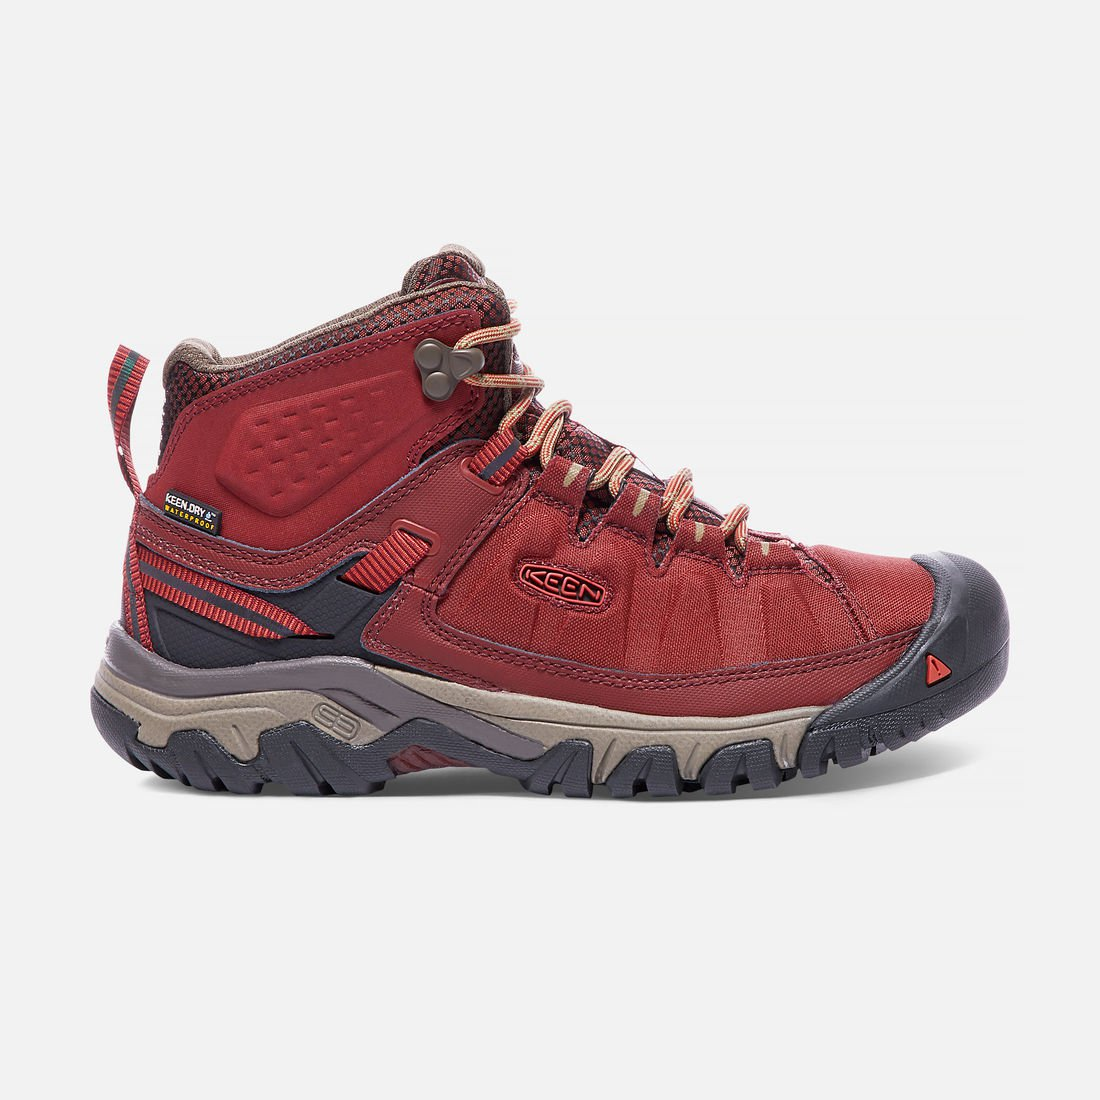 Keen Shoes Ethical